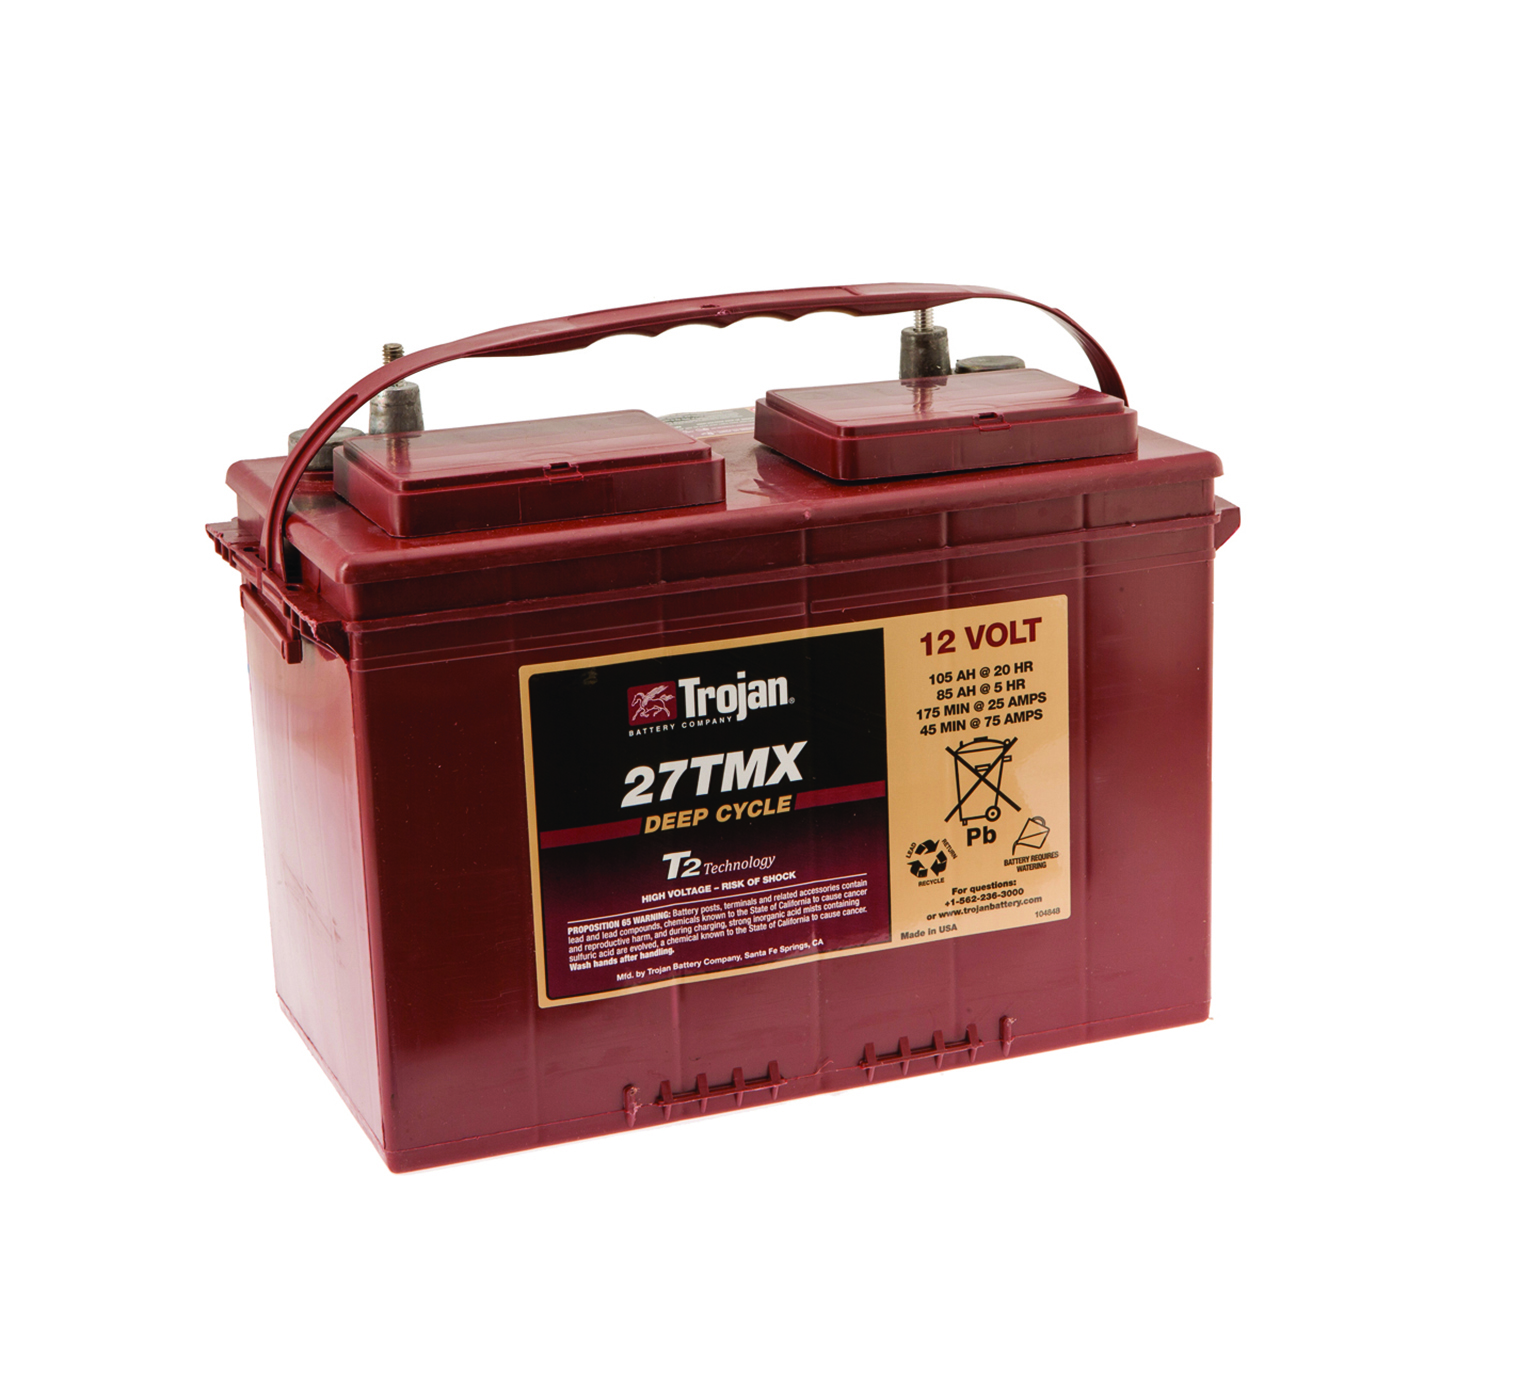 578426 12 Volt Wet Trojan Battery alt 1